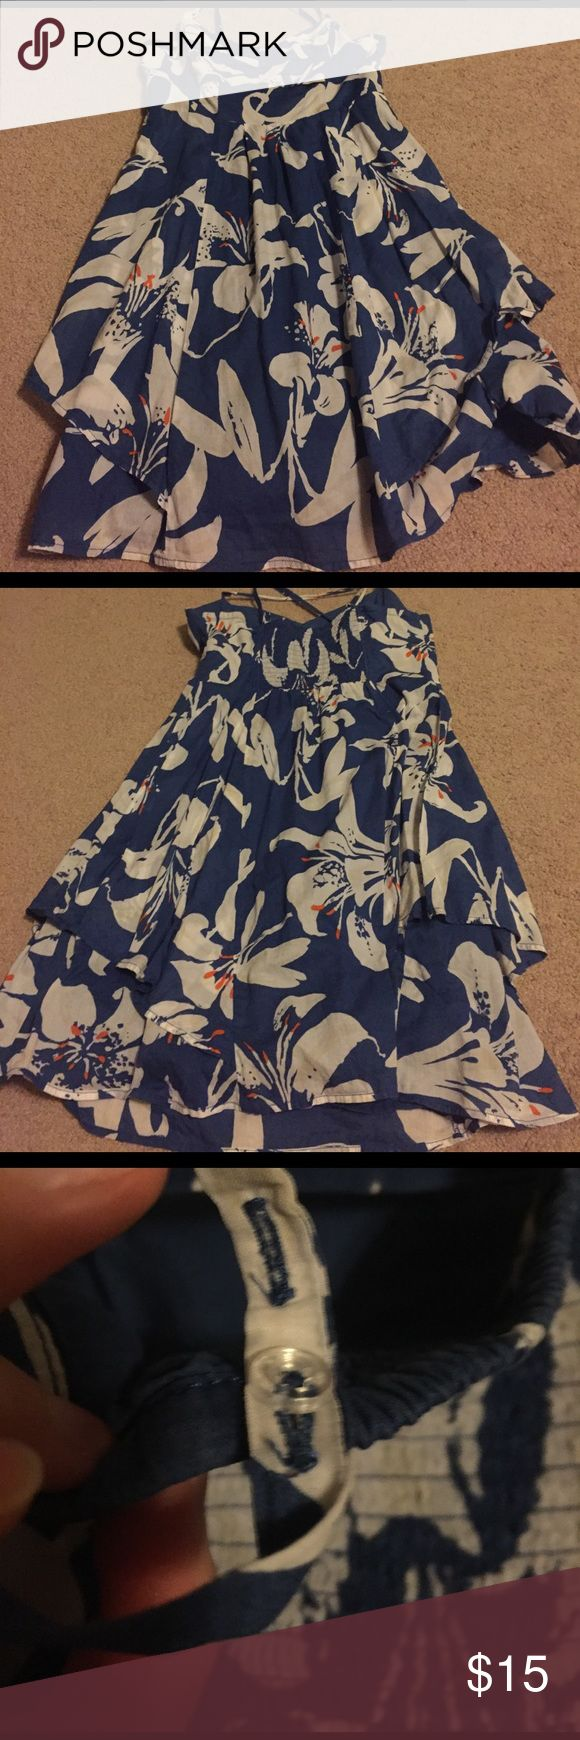 Floral American Eagle Outfitters dress Love this dress however I don't fit it anymore. It's in dark blue with white and orange flowers. It's a crossback strap style and you can adjust them in the back with the buttons. Like new condition with no damage. American Eagle Outfitters Dresses Midi